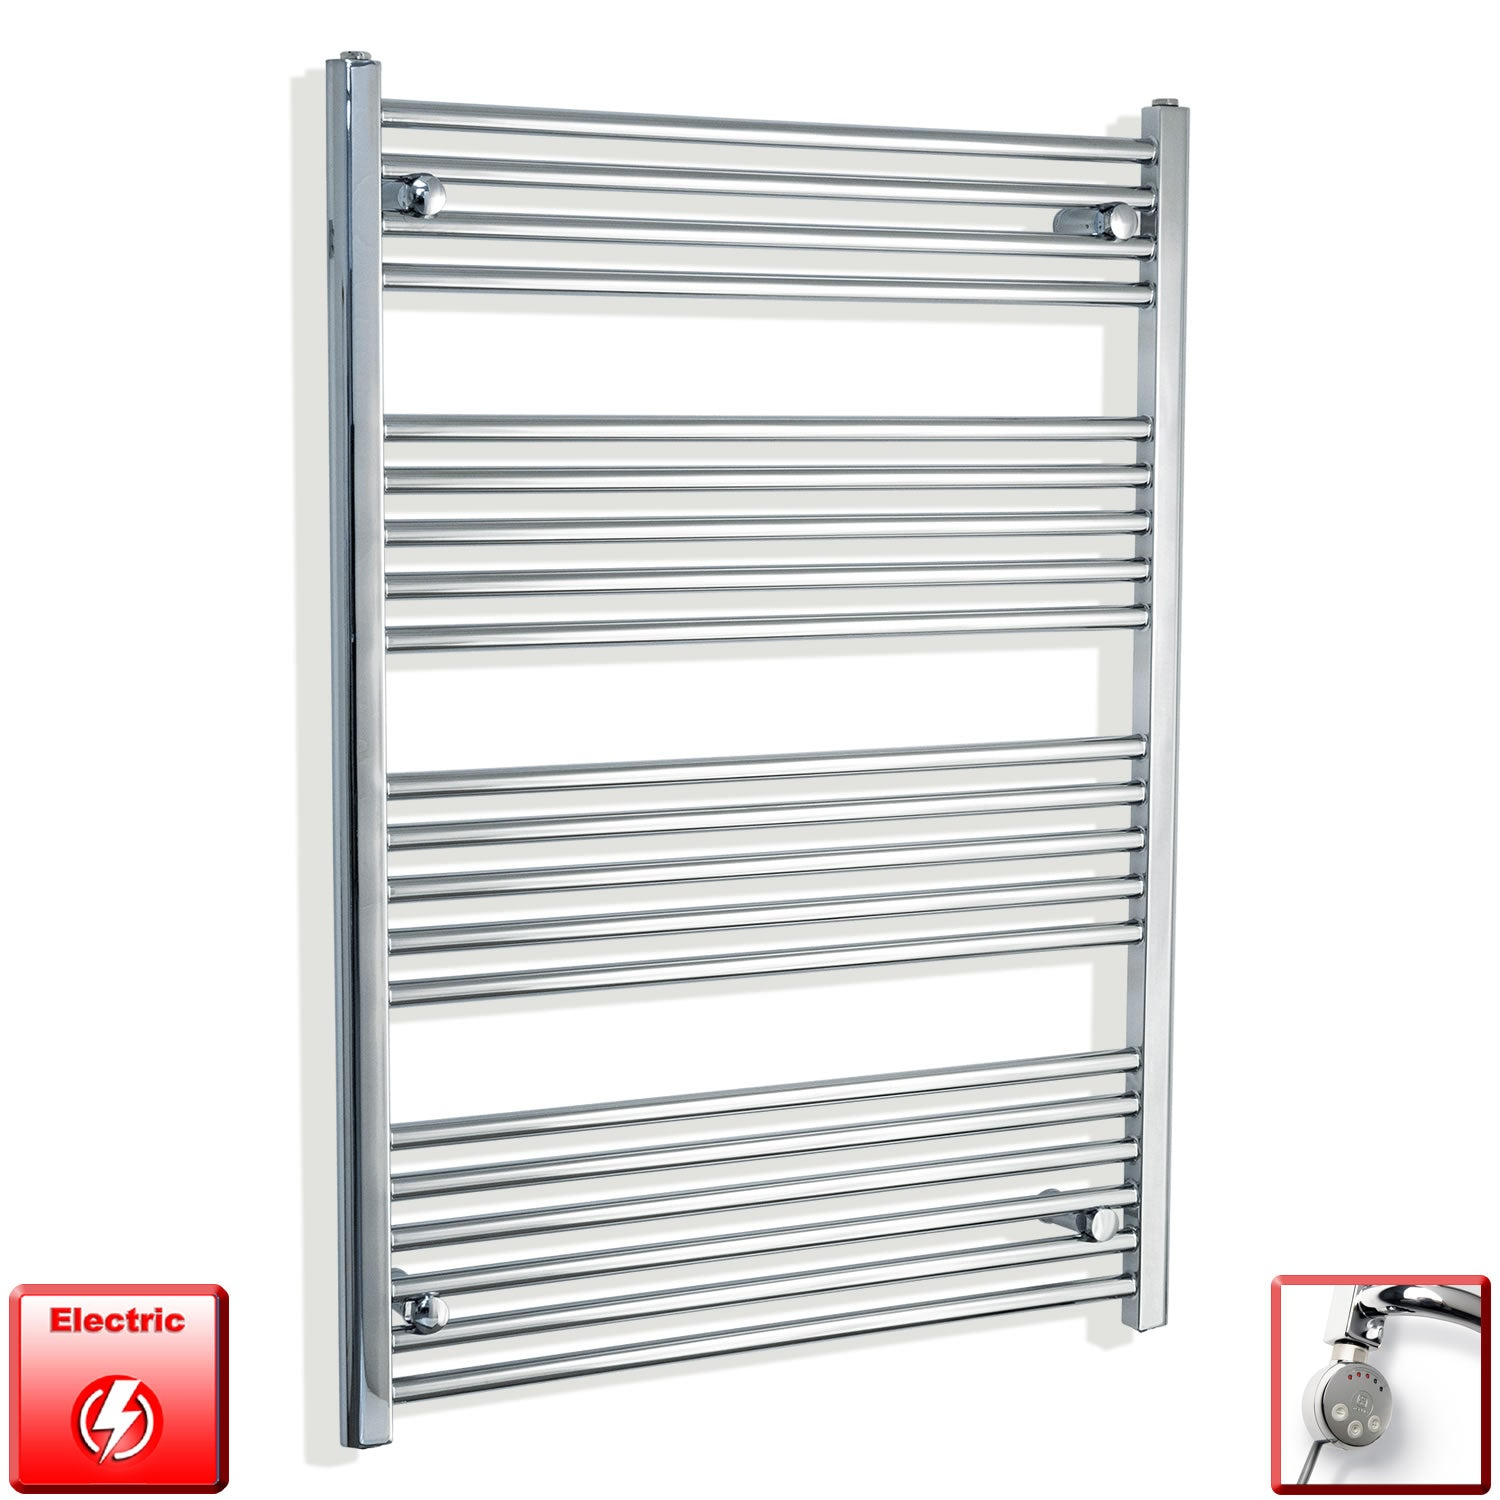 750mm Wide 1100mm High Flat Or Curved Chrome Pre-Filled Electric Heated Towel Rail Radiator HTR,MEG Thermostatic Element / Straight